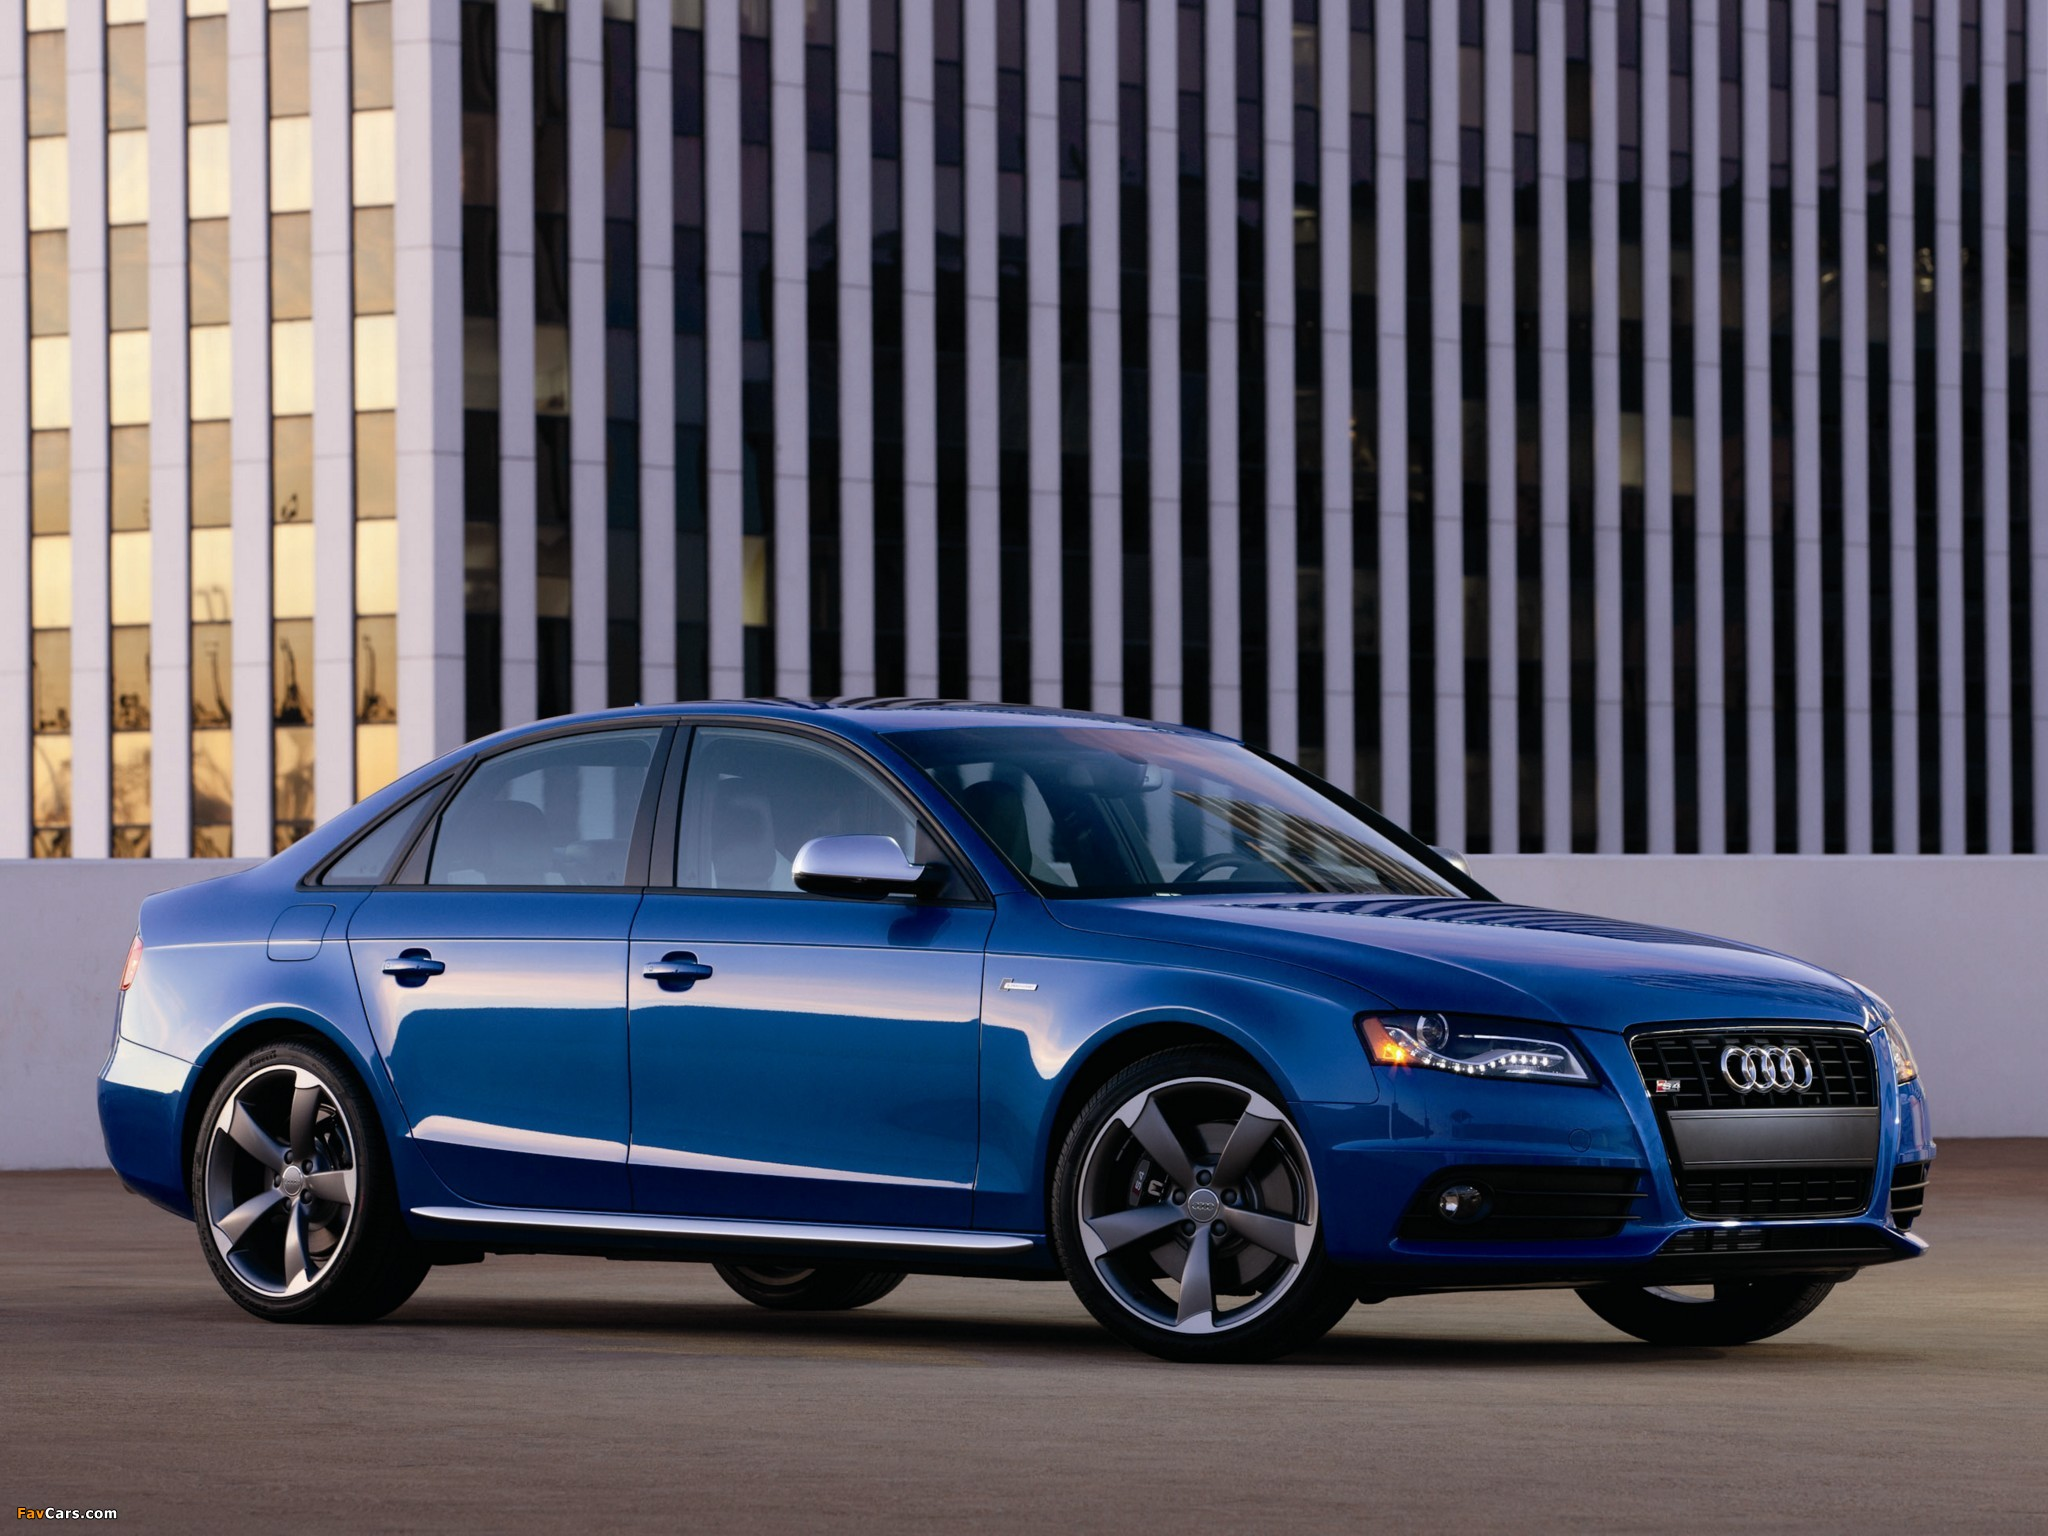 Images of Audi S4 Sedan US-spec (B8,8K) 2009 (2048x1536)